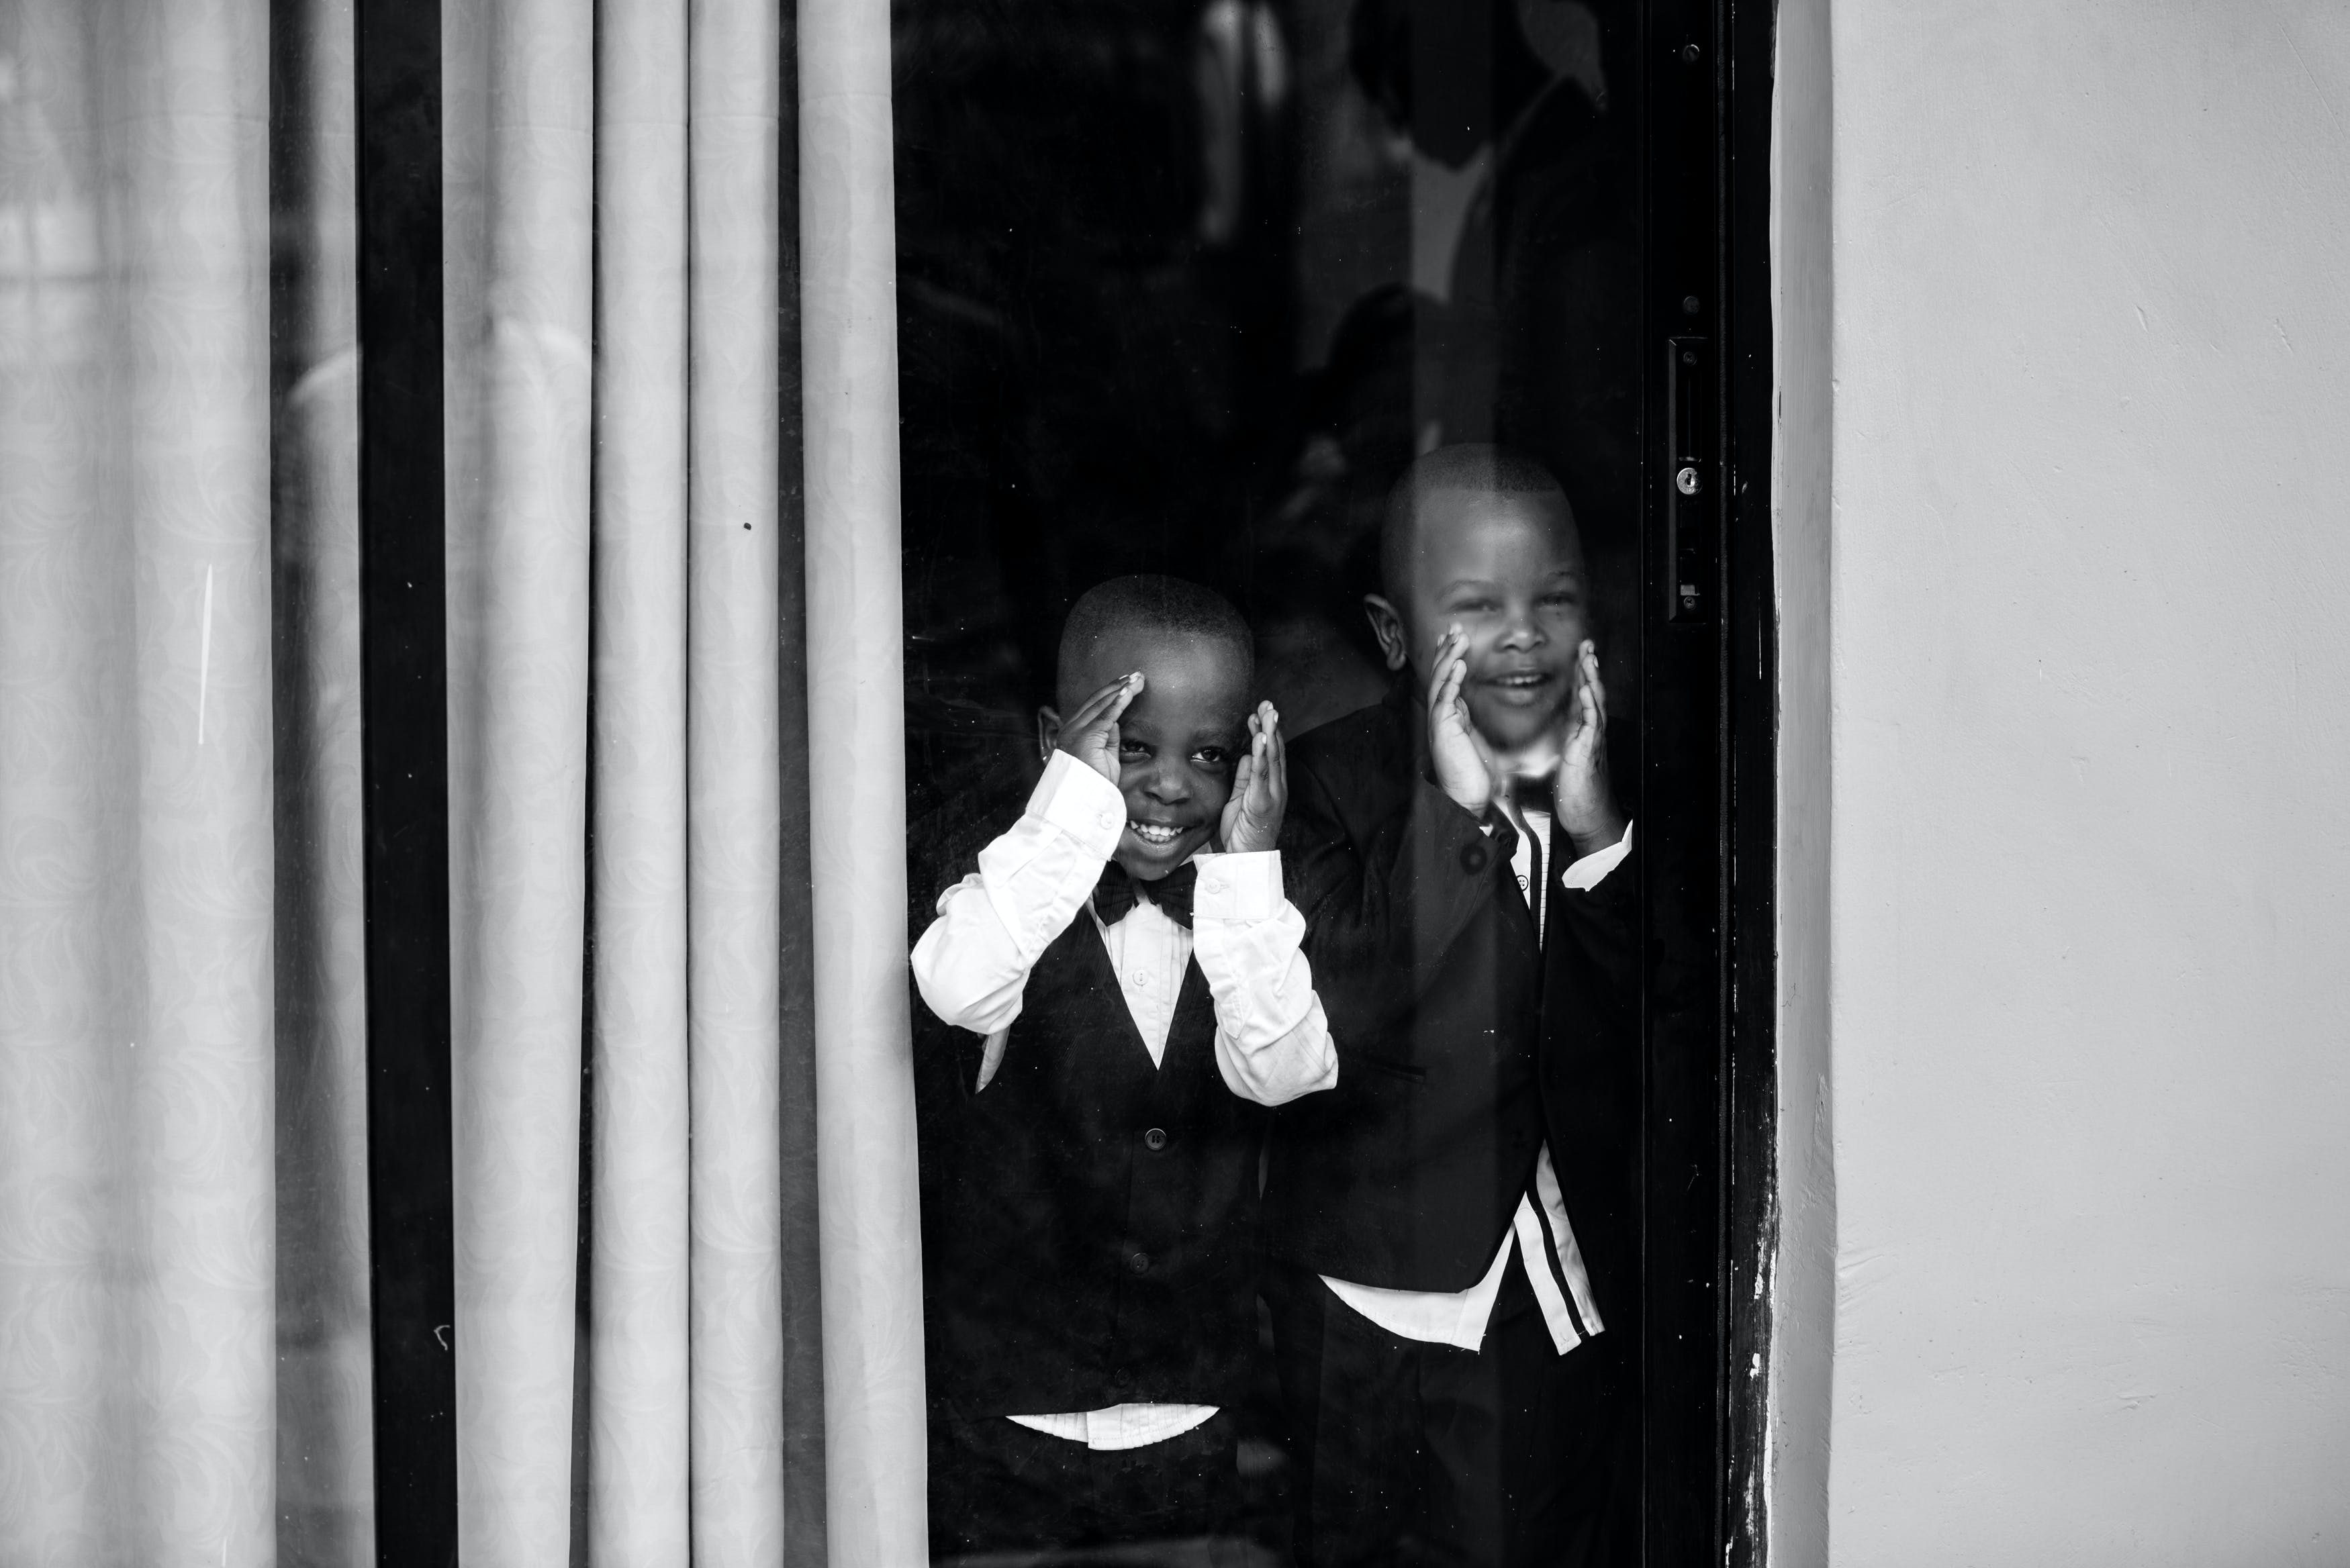 Two Boys in Front of Glass Window